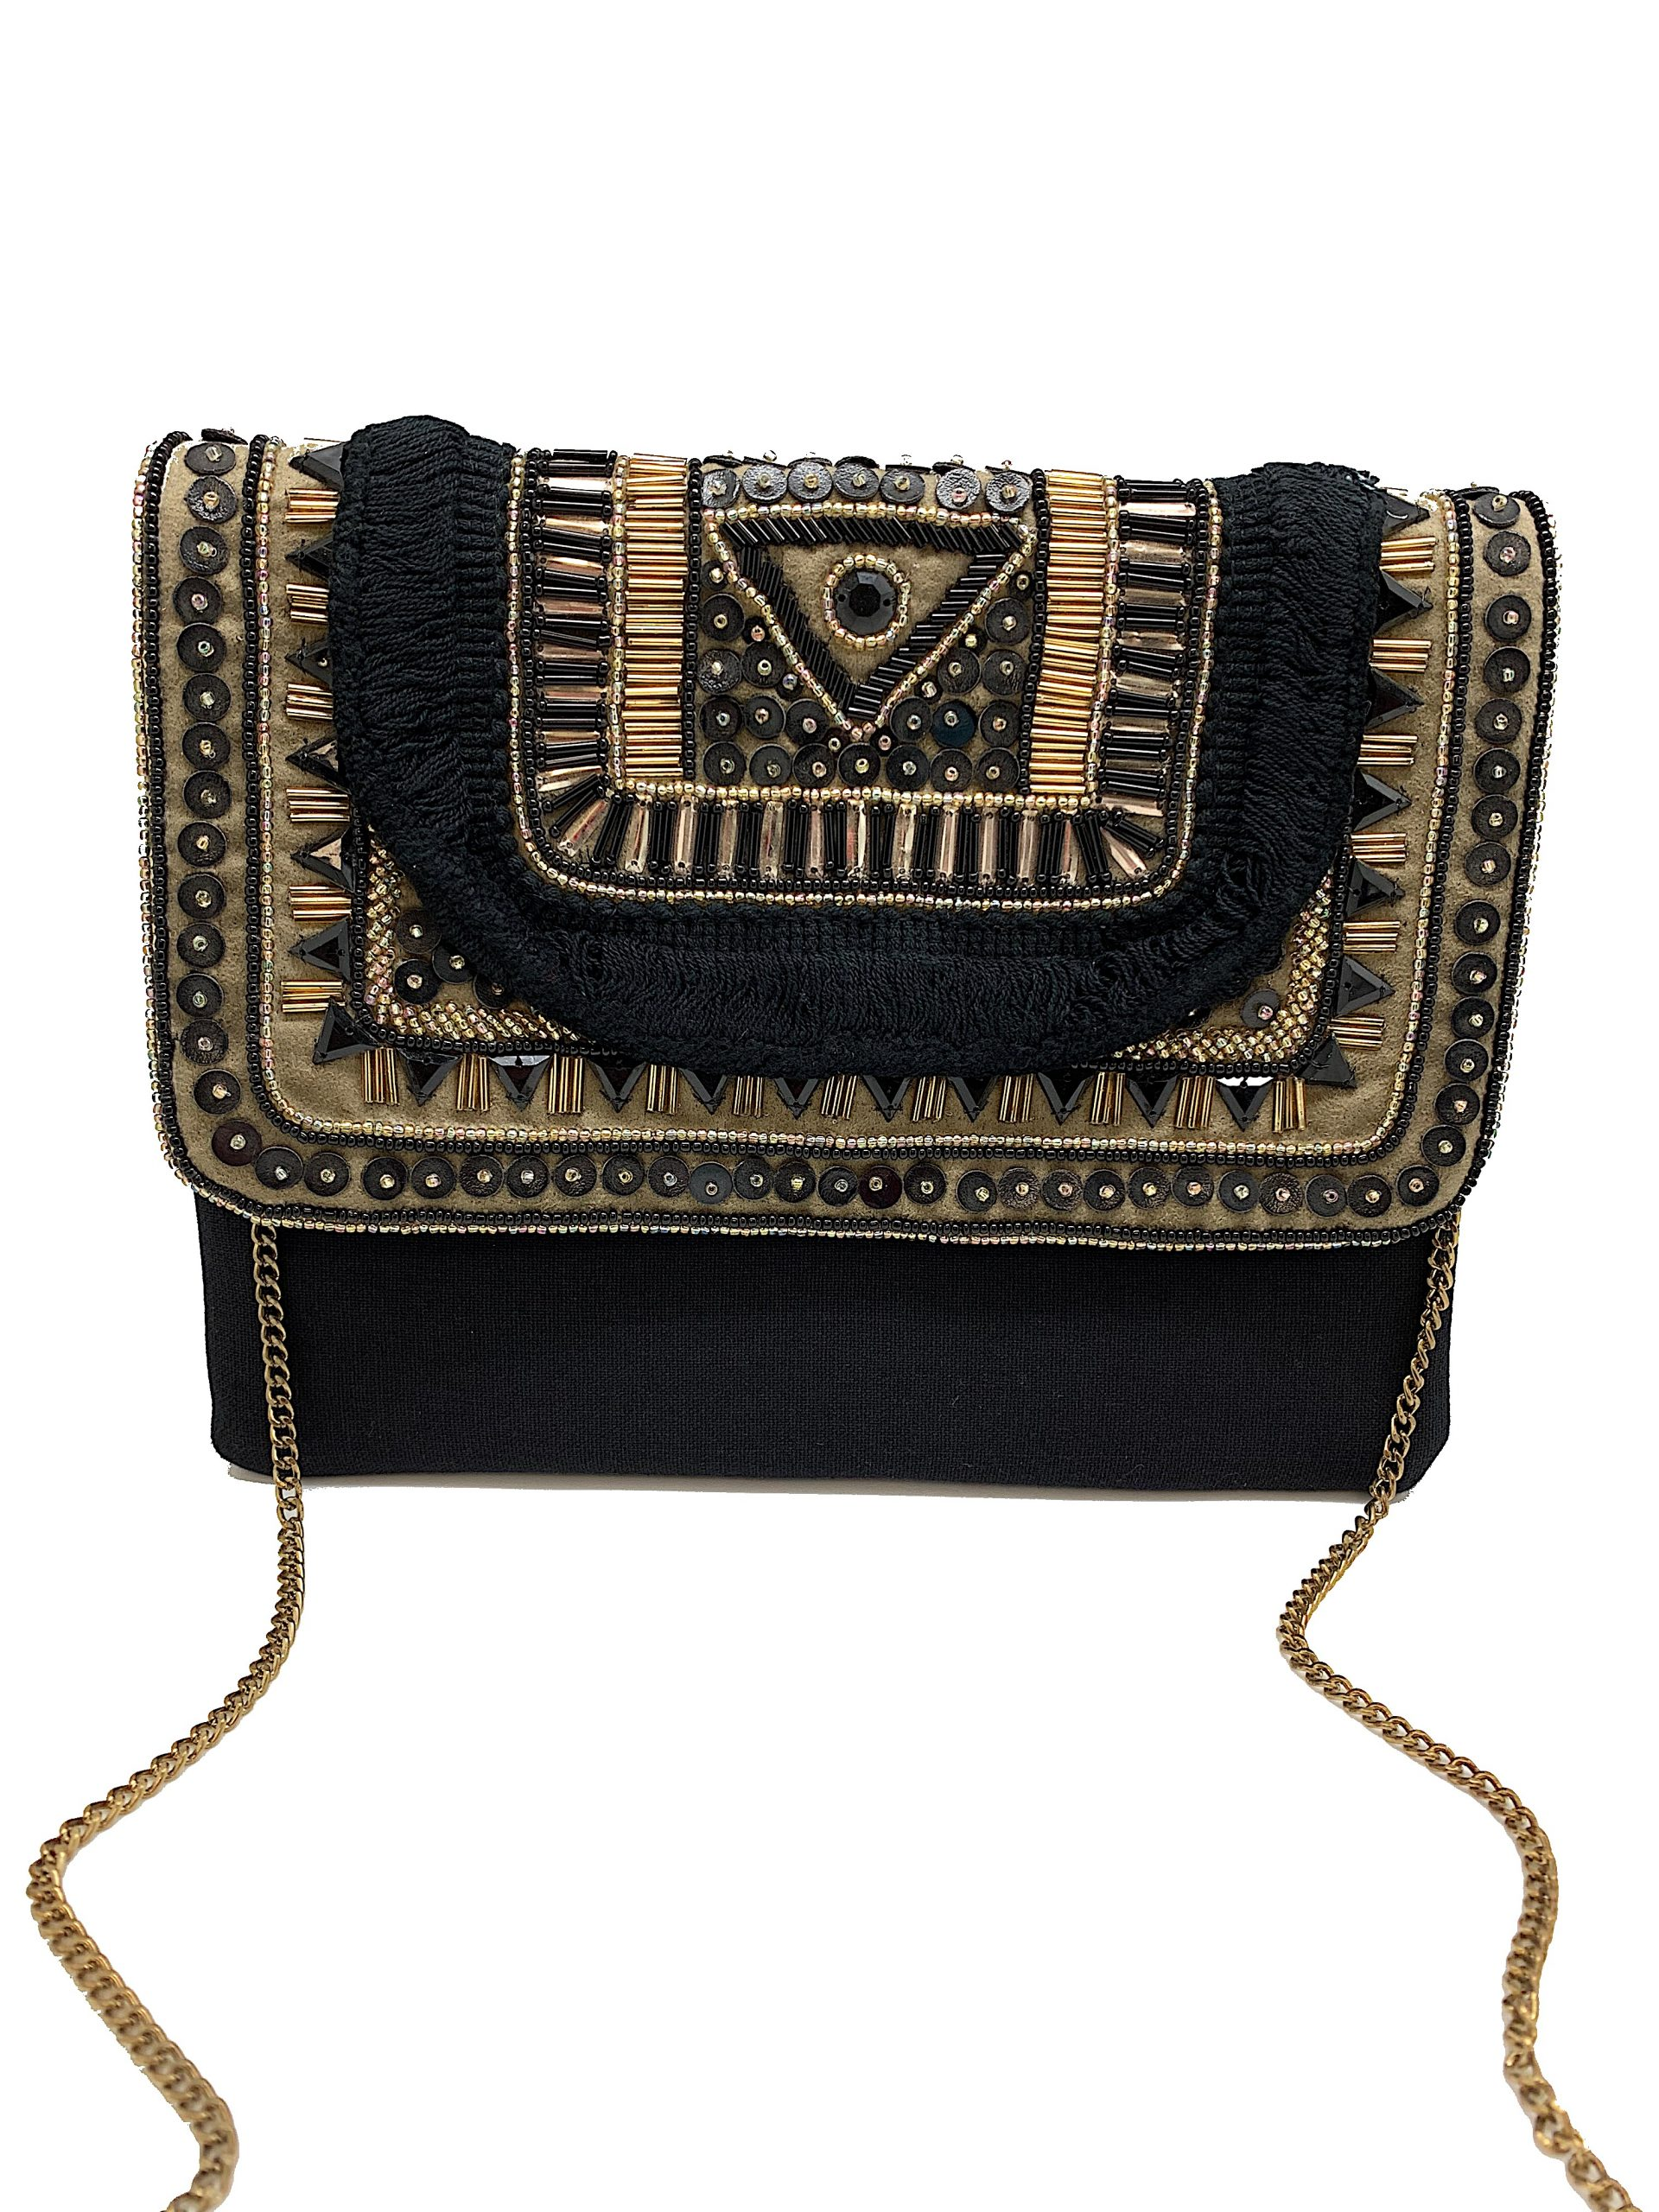 BLACK BOHO BAG WITH GOLD ACCENTS